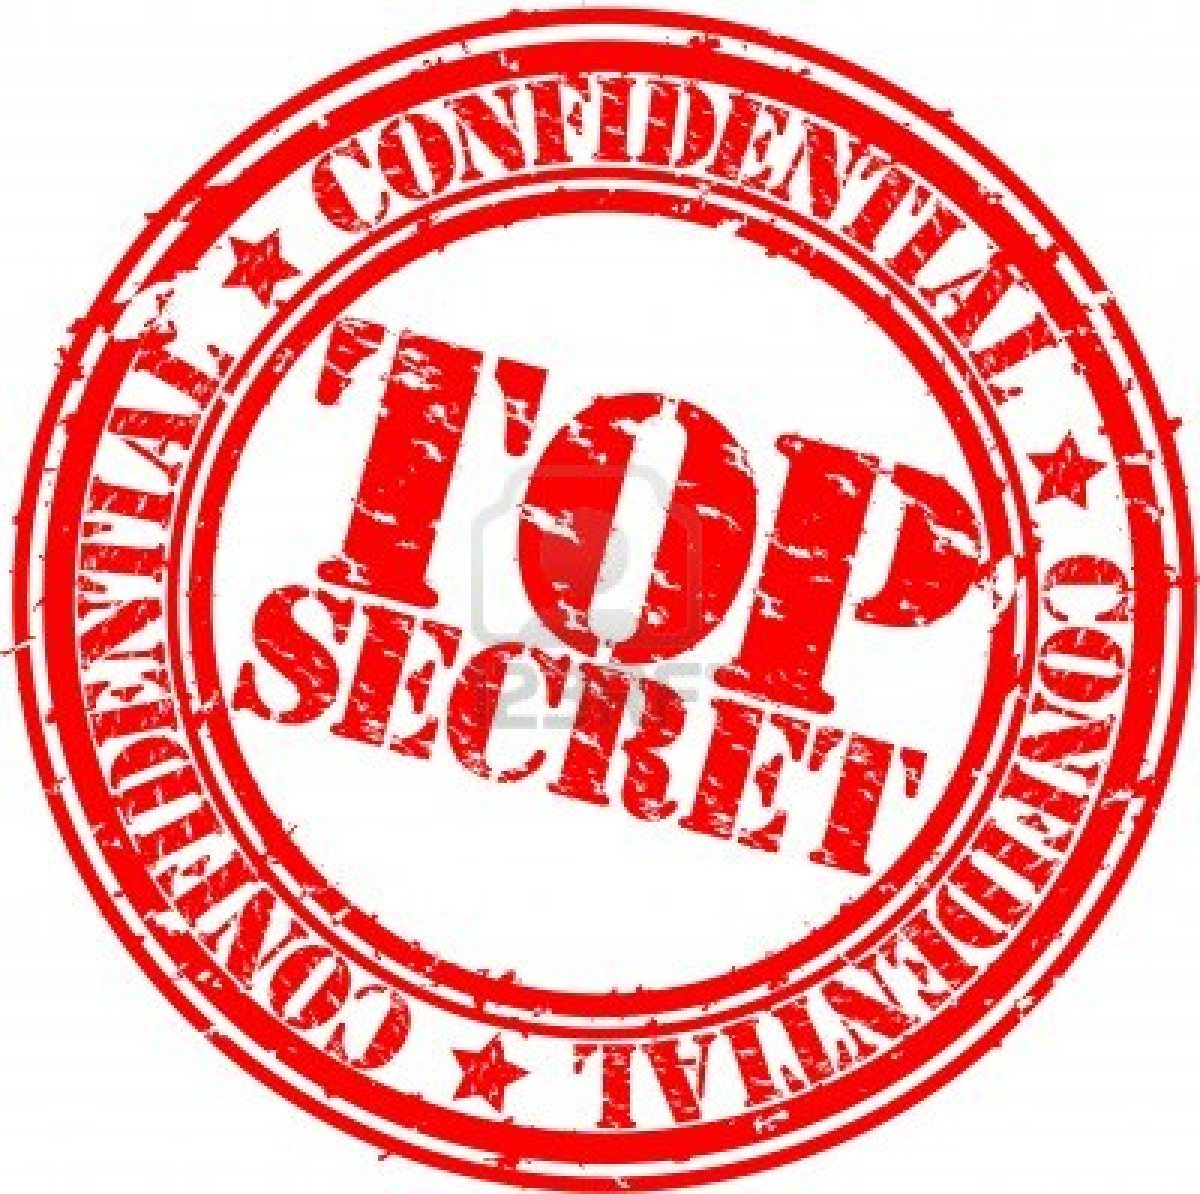 hight resolution of top secret mission clipart